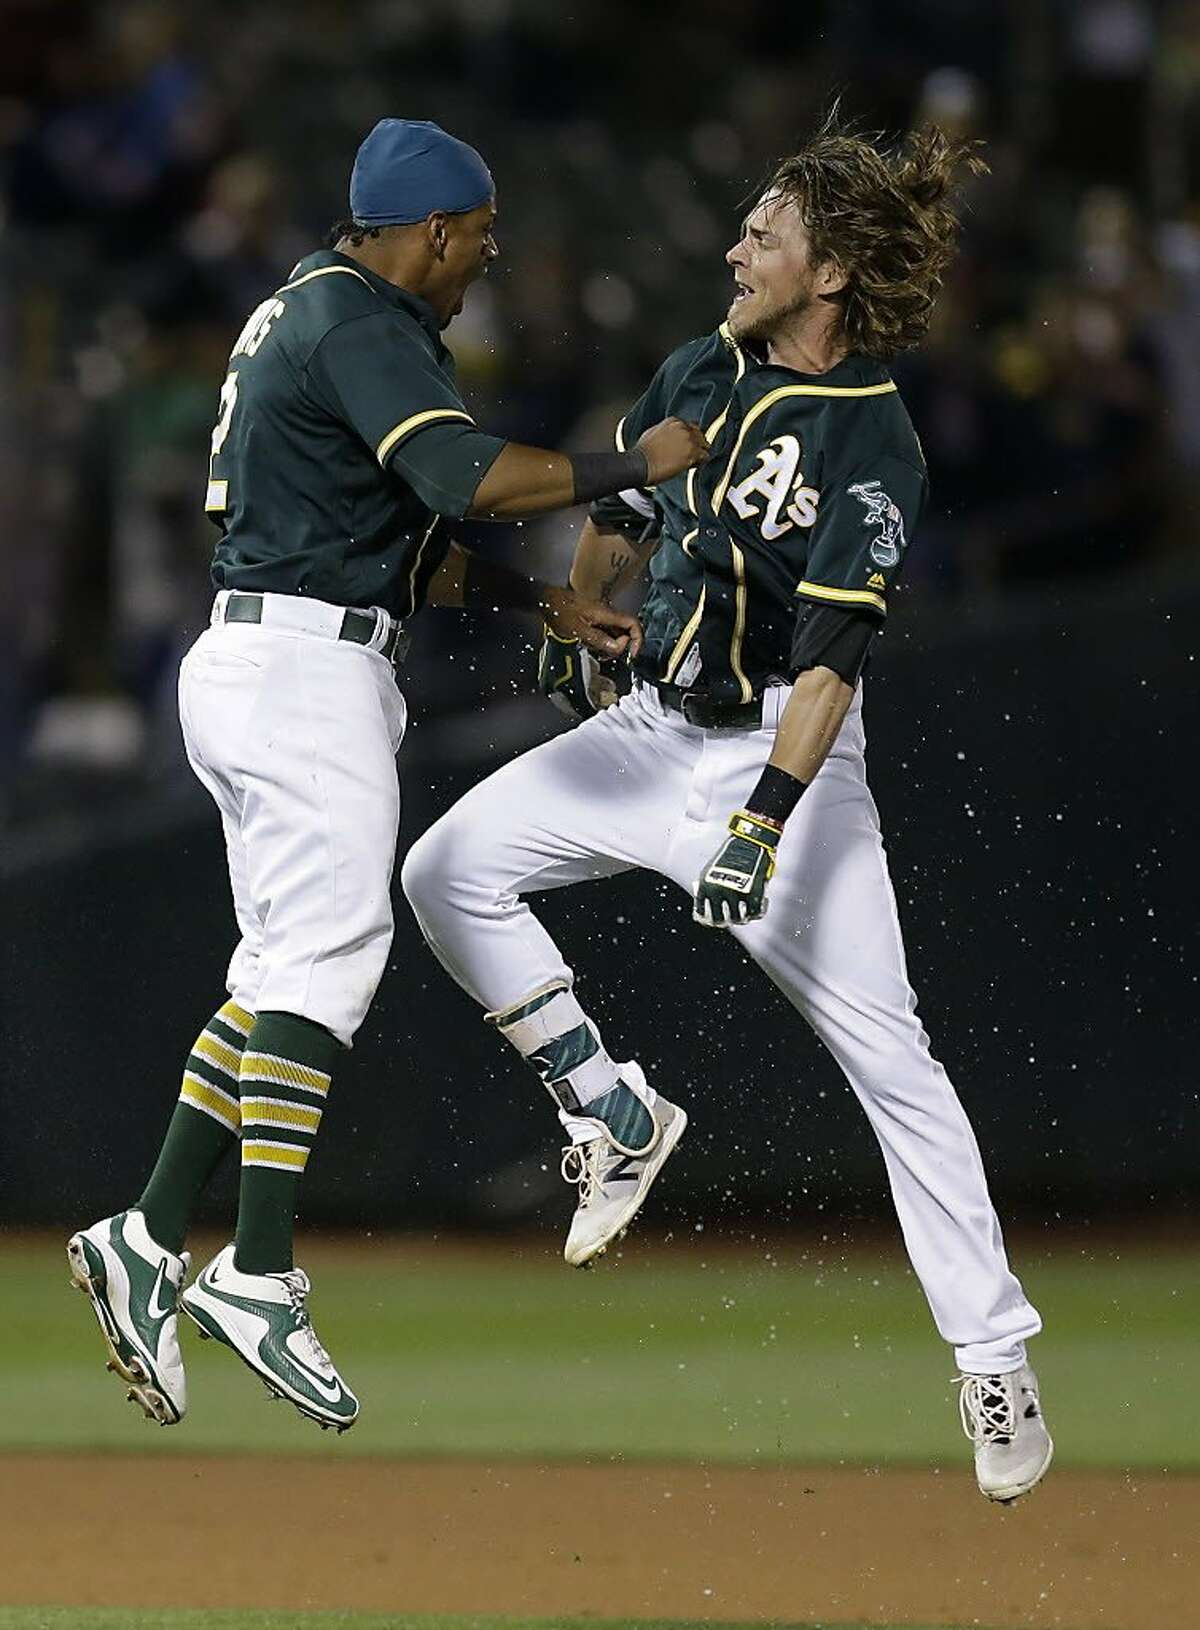 Oakland Athletics' Josh Reddick, right, celebrates with Khris Davis after making the game winning hit in the tenth inning of a baseball game against the Houston Astros Tuesday, July 19, 2016, in Oakland, Calif. (AP Photo/Ben Margot)